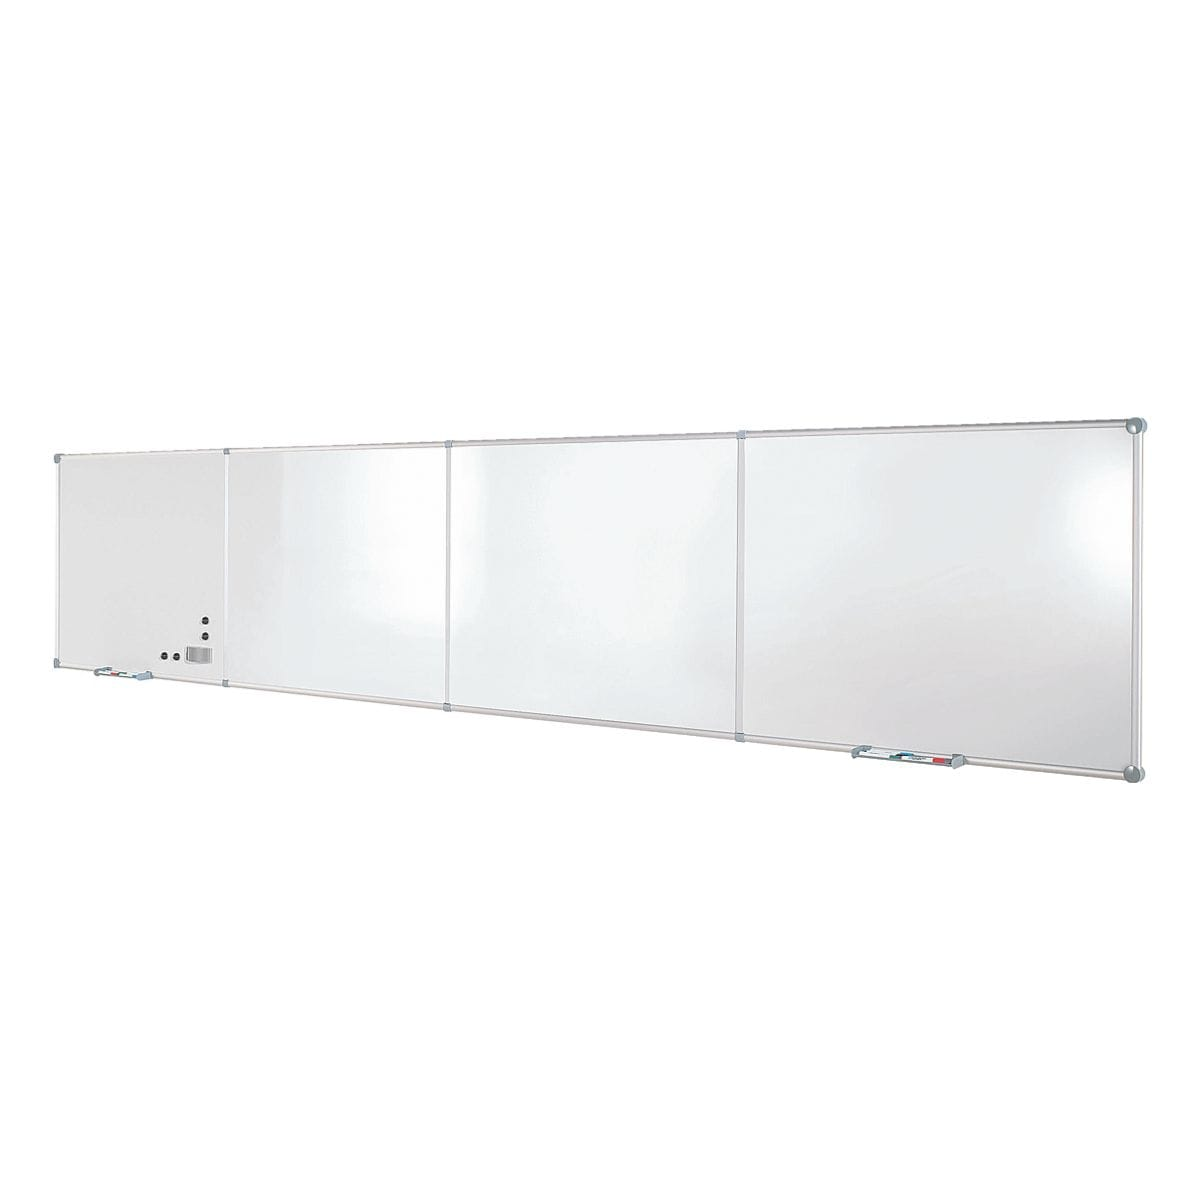 Whiteboard Günstig Maul Whiteboard 6334684 120 X 90 Cm Endlostafel